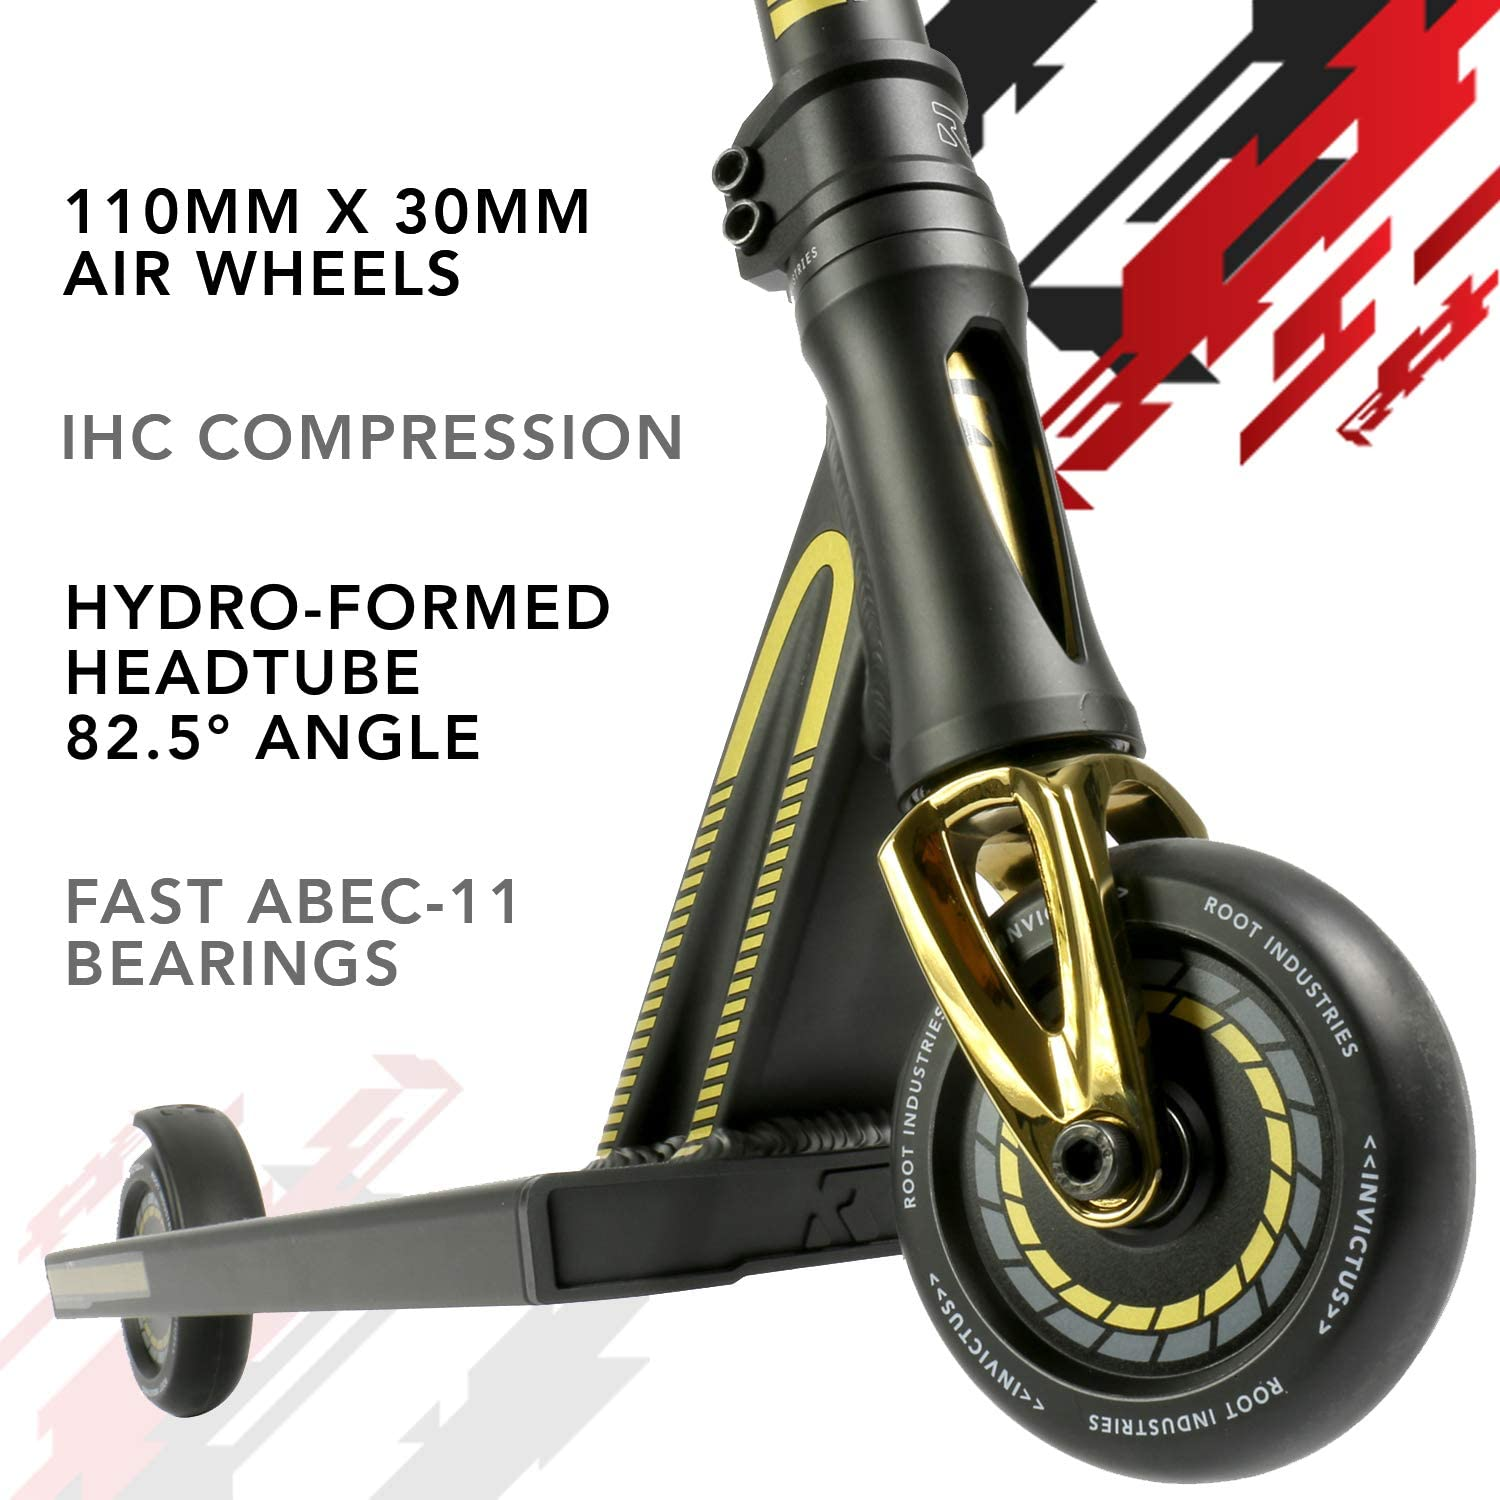 Wide Pro Scooter Wheels Stunt Scooters Pro Scooters for Kids Pro Scooters for Adults Pro Scooter Deck Invictus Complete Scooter Professional Scooter for Any Age Rider